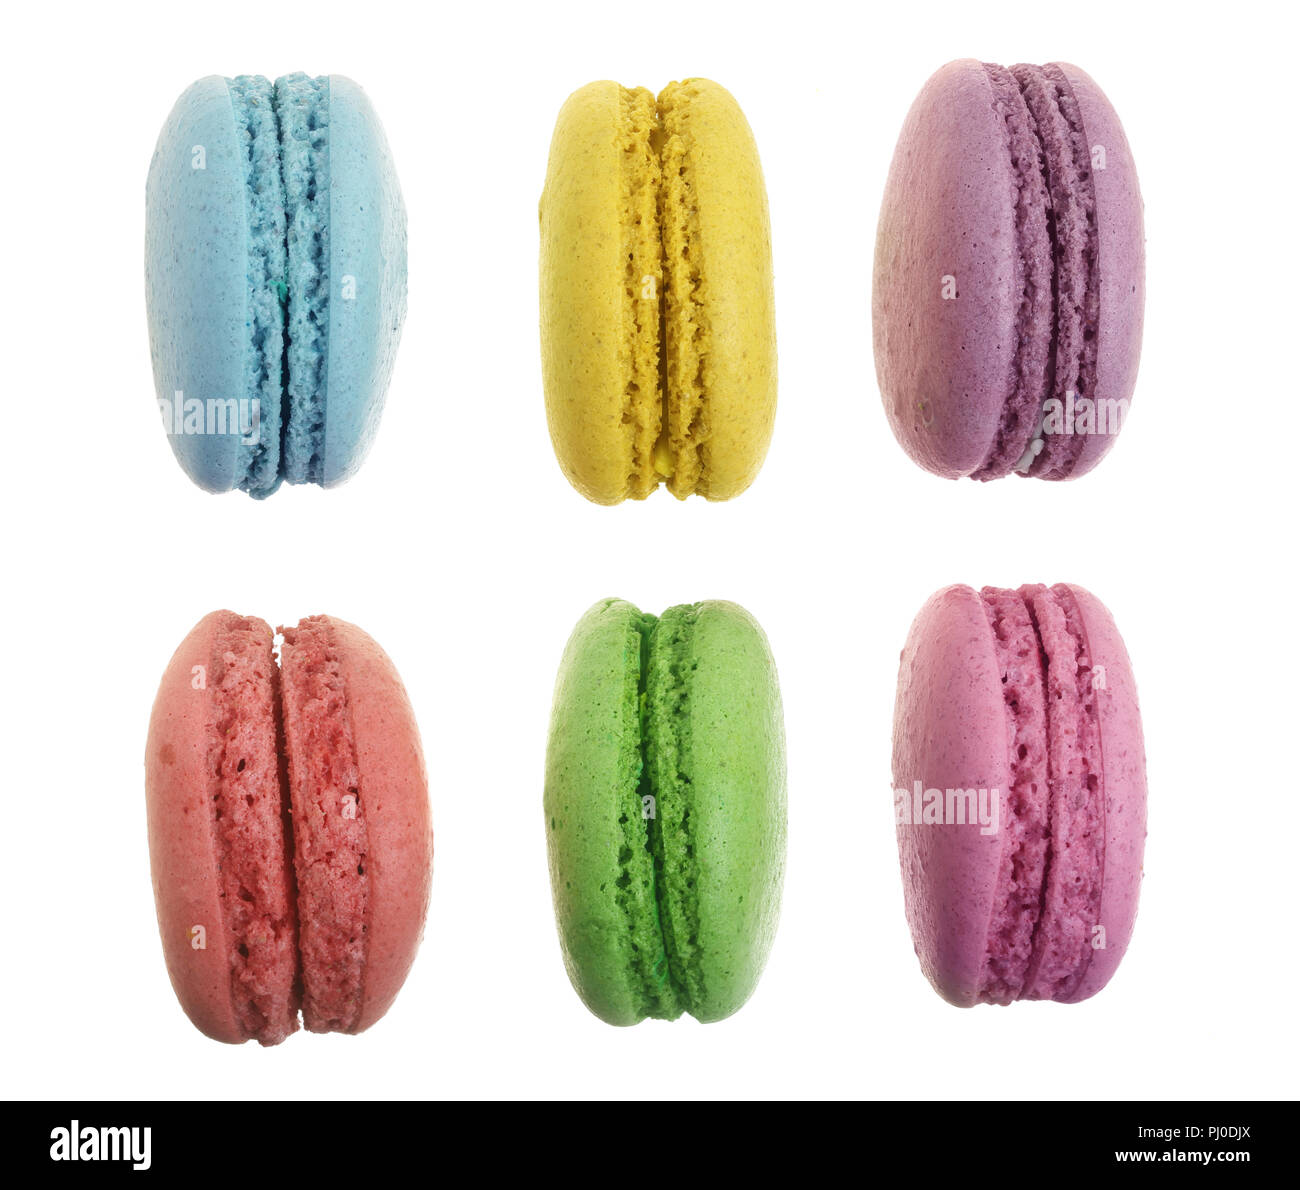 colored macaroons isolated on white background without a shadow closeup. Top view. Flat lay - Stock Image